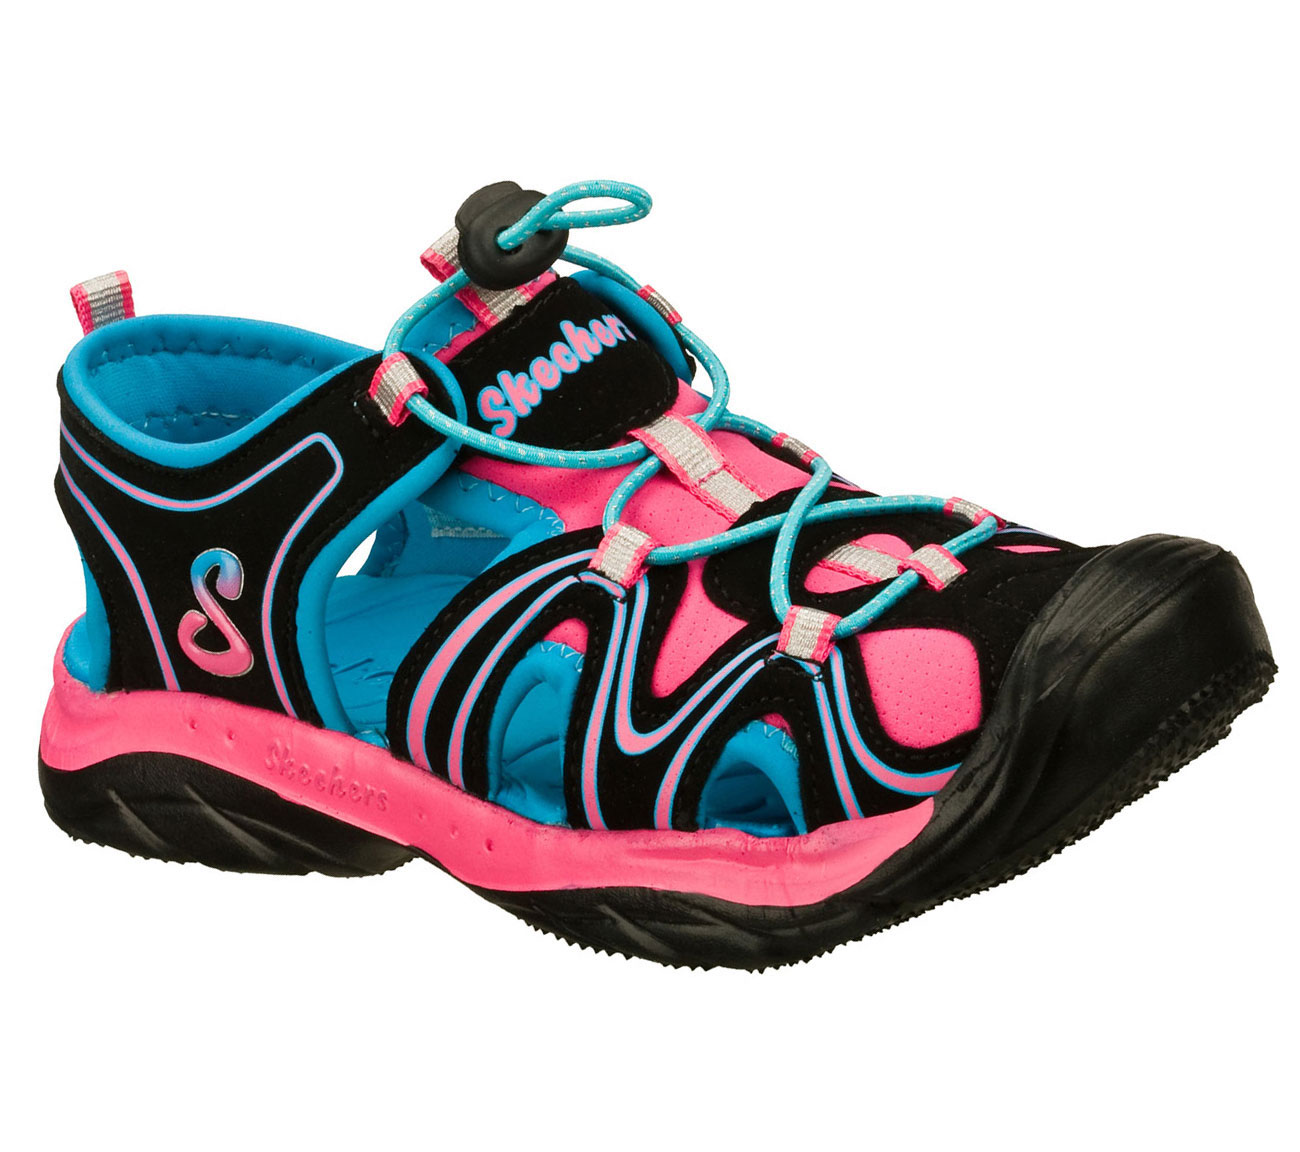 Buy SKECHERS Cape CodSKECHERS USA Shoes Only $30.40